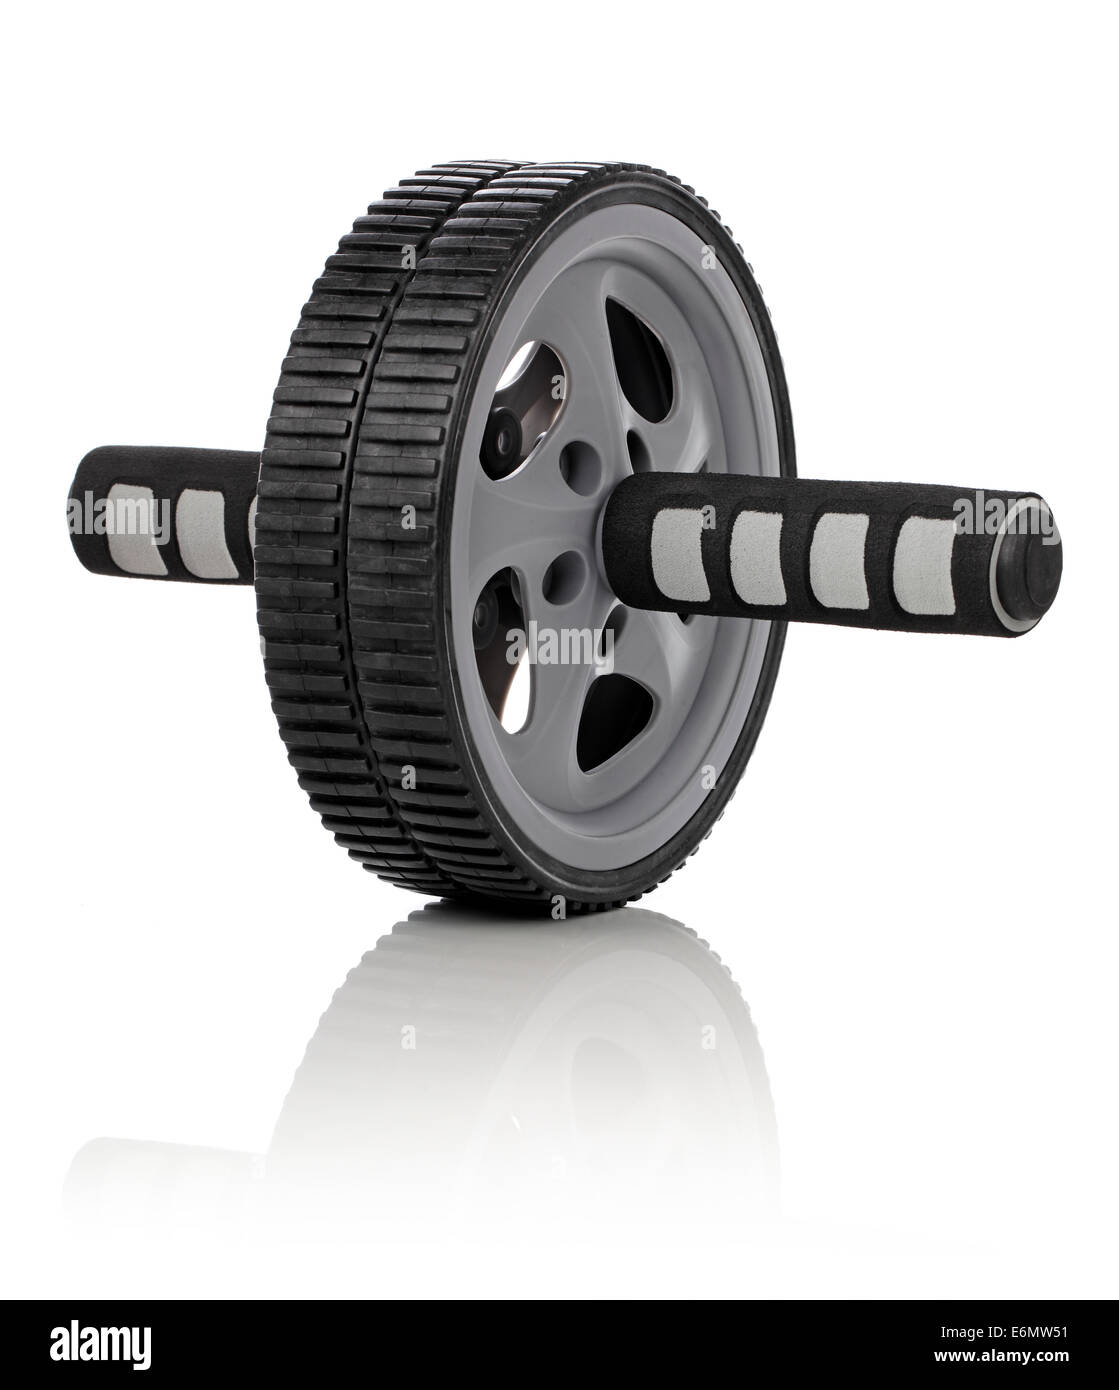 Ab roller wheel used for exercising abdominal muscles. - Stock Image